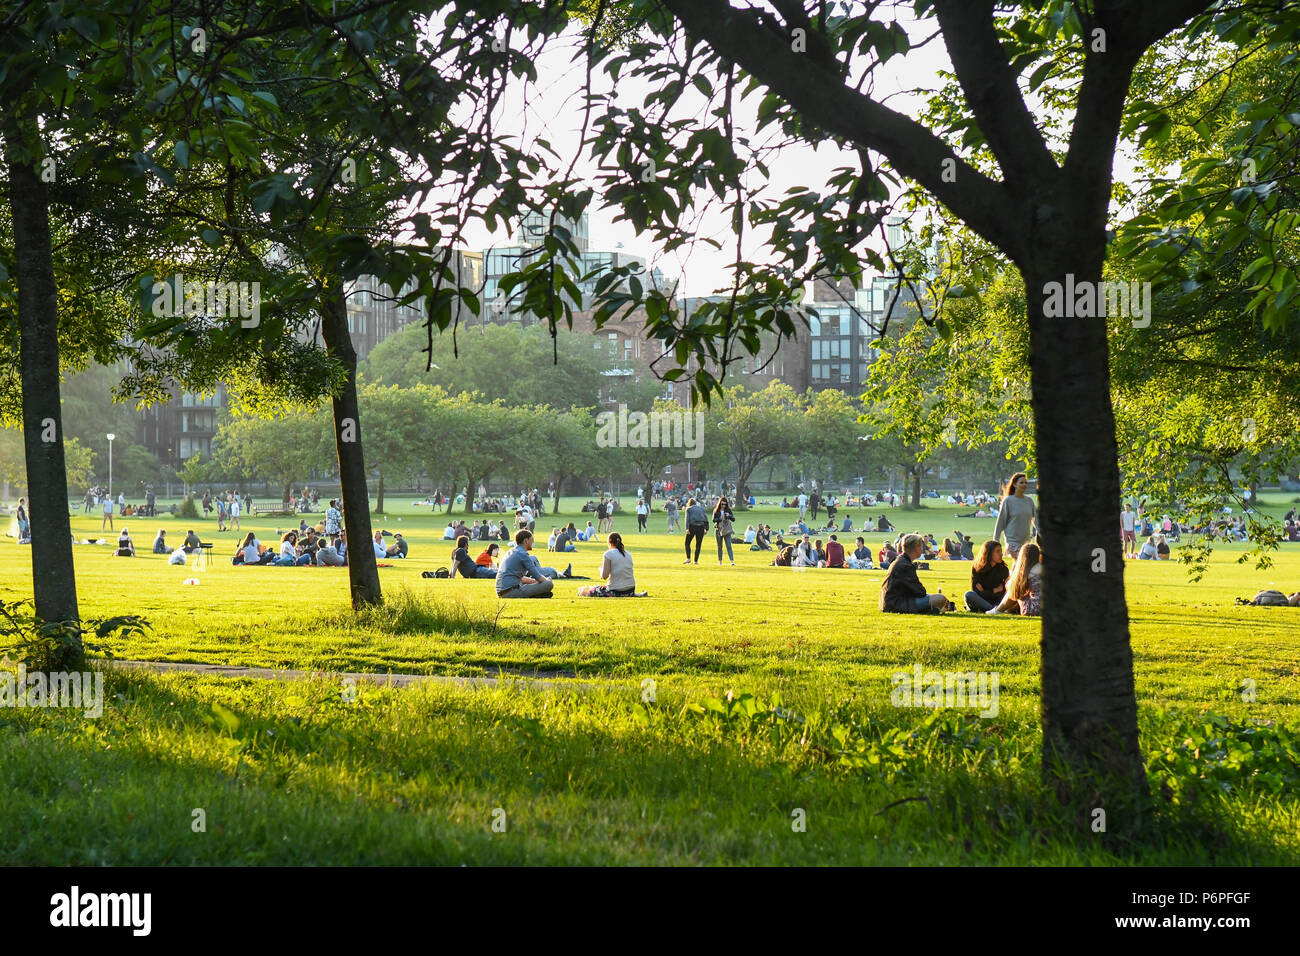 The Meadows, Edinburgh, Scotland, UK - a large green open space close to Edinburgh University during the 2018 heatwave - Stock Image